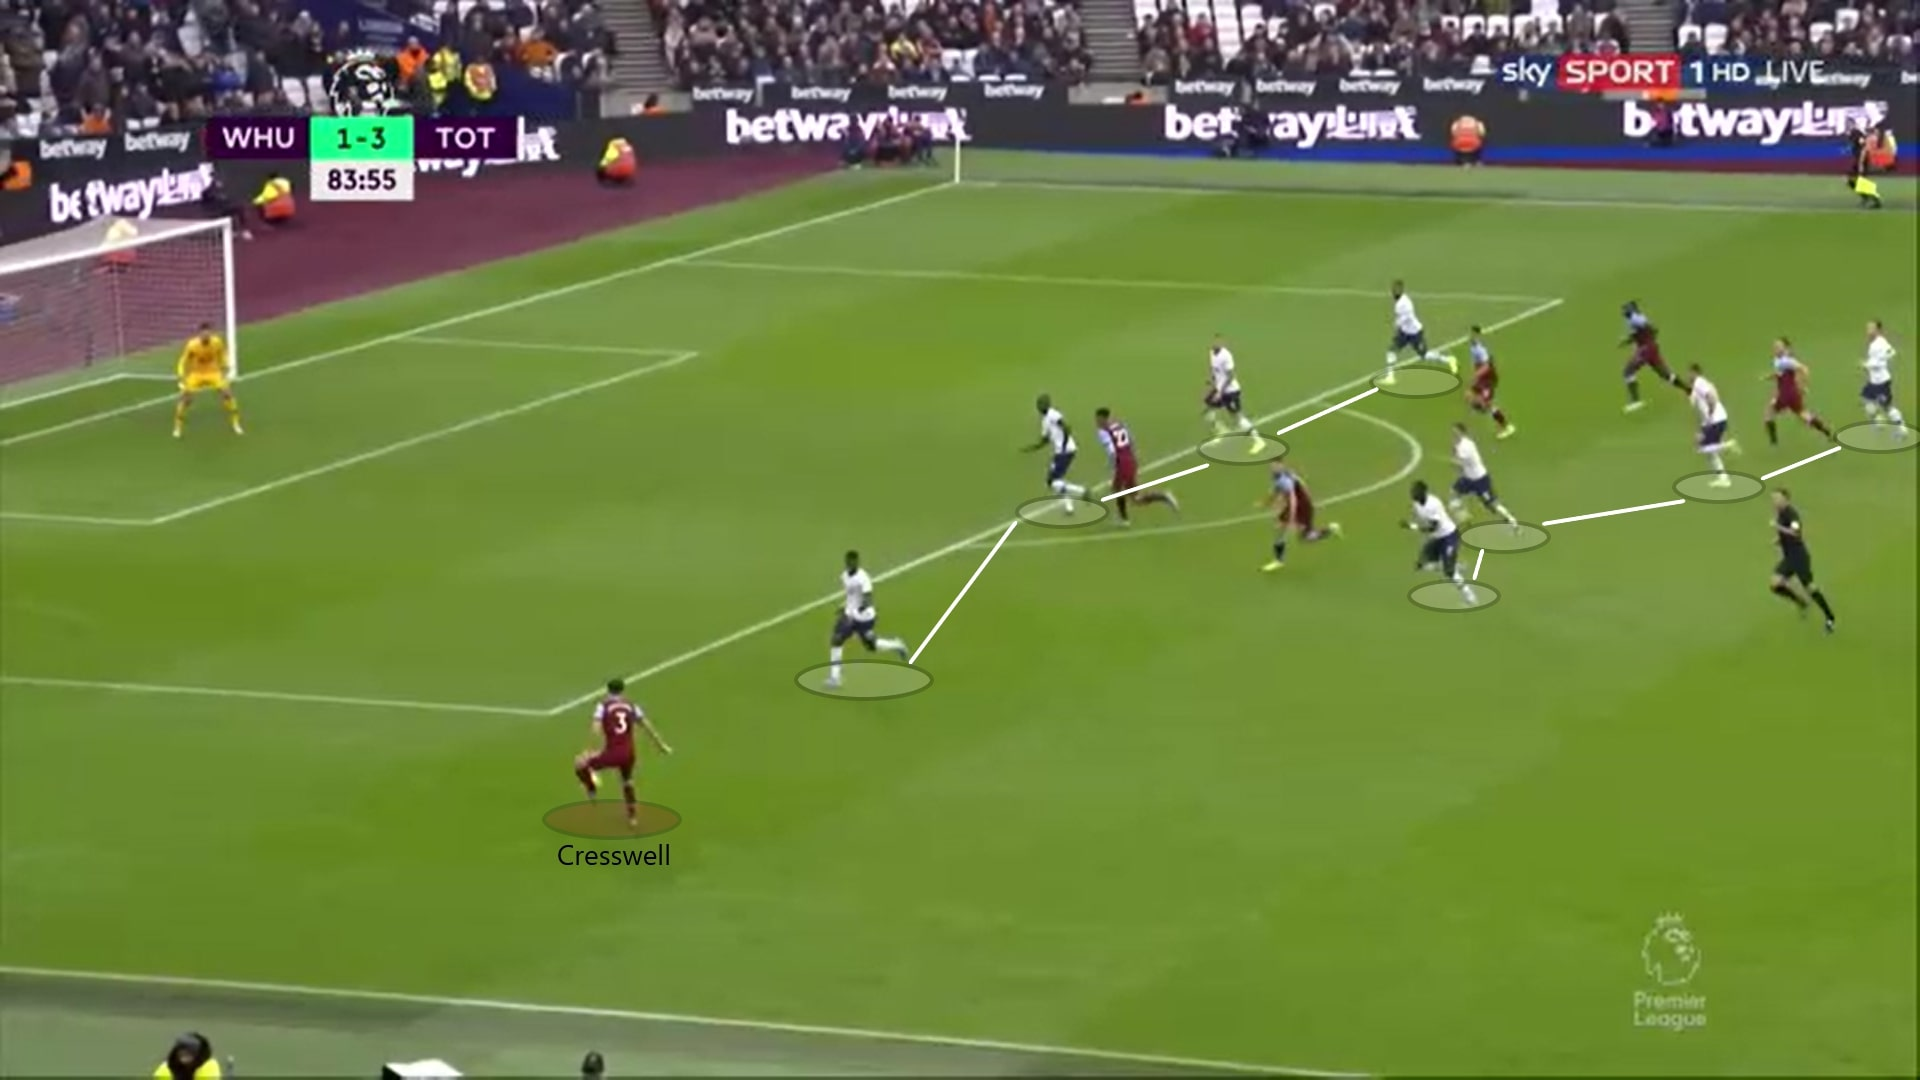 Premier League 2019/20: West Ham vs Tottenham - tactical analysis tactics